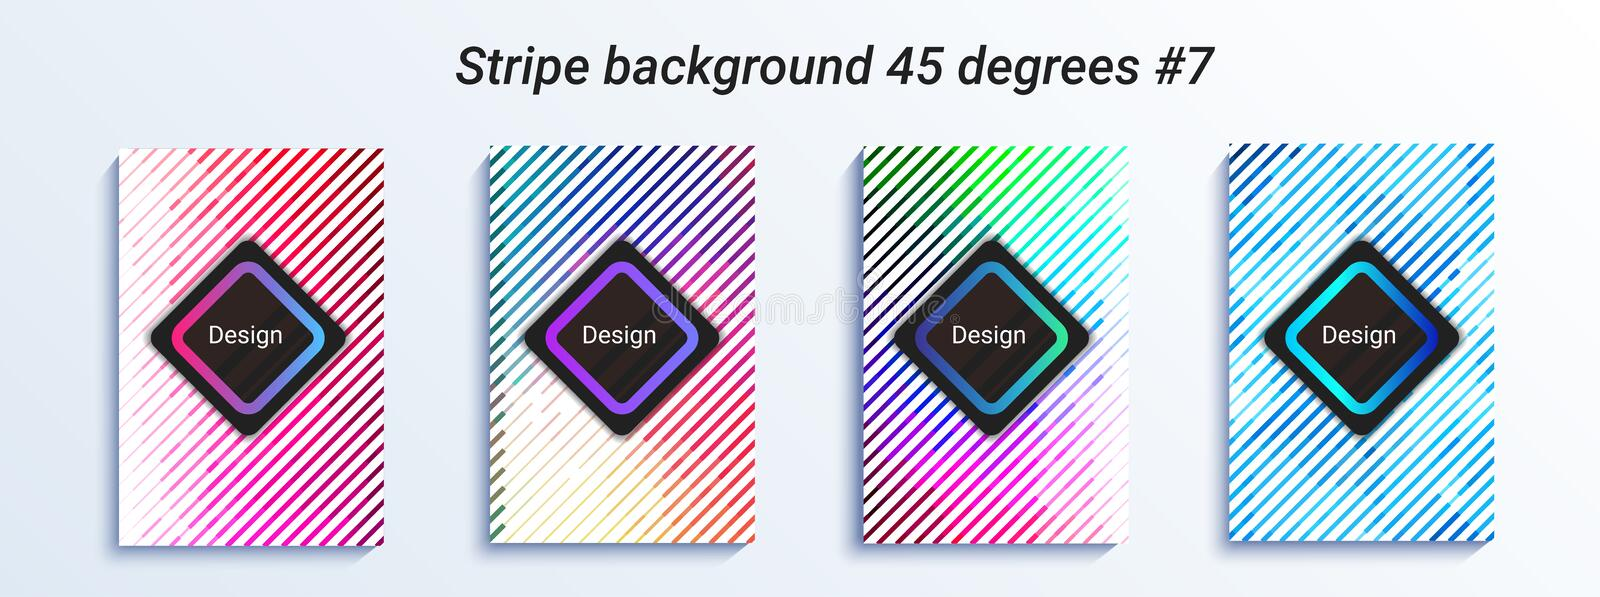 Minimal striped bakcground design. Colorful halftone gradient. Bright geometric pattern. Vector illustration. Abstract striped bakcground design. Colorful stock illustration